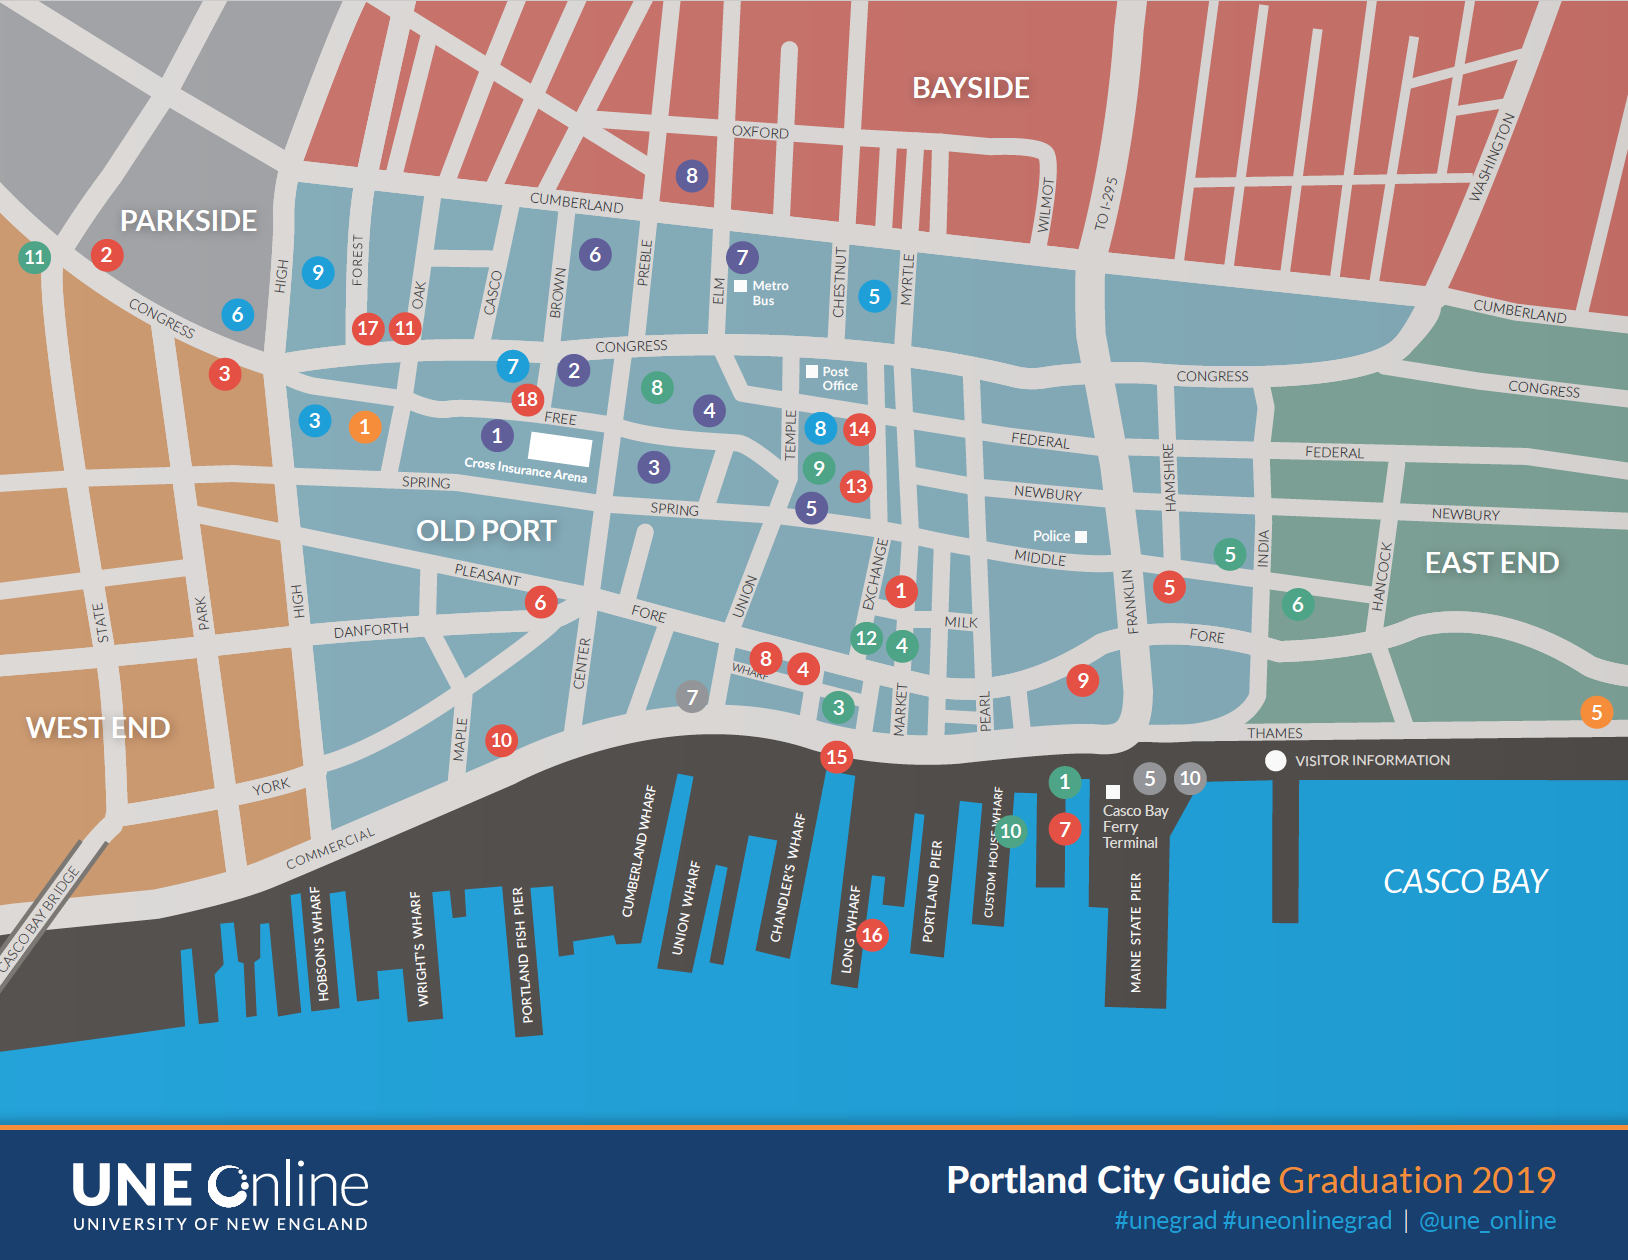 2019 UNE Online City Guide of Portland Maine